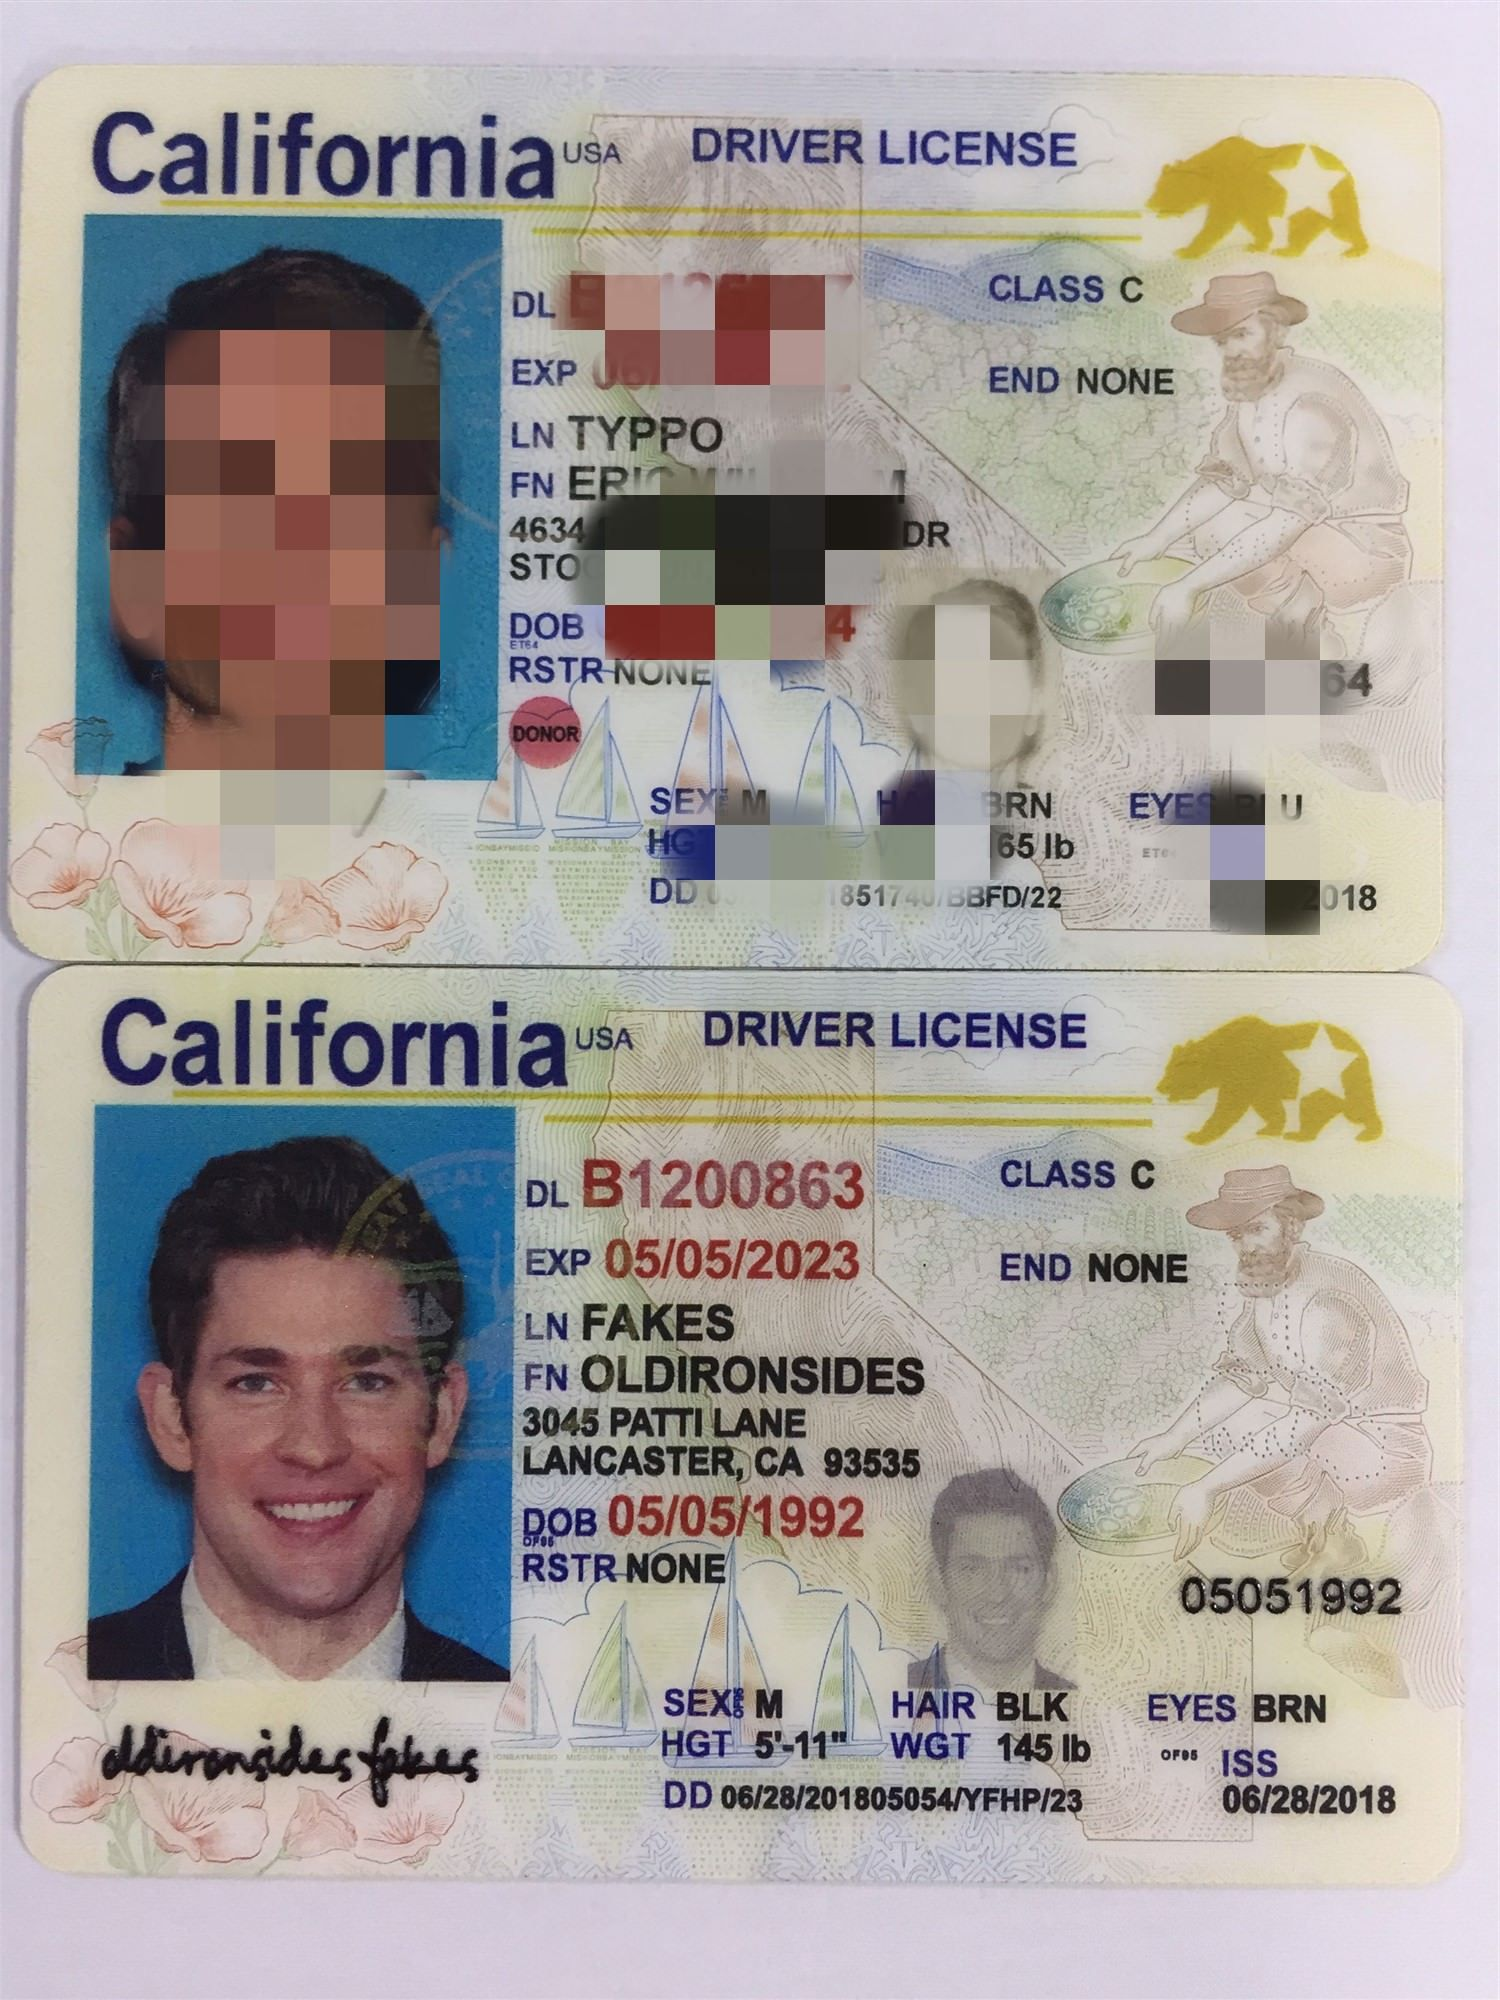 Registered Real Passports And Ca I… Id License New 2019… In new Driver fake Legally Id Fake -buy California Drivers Real